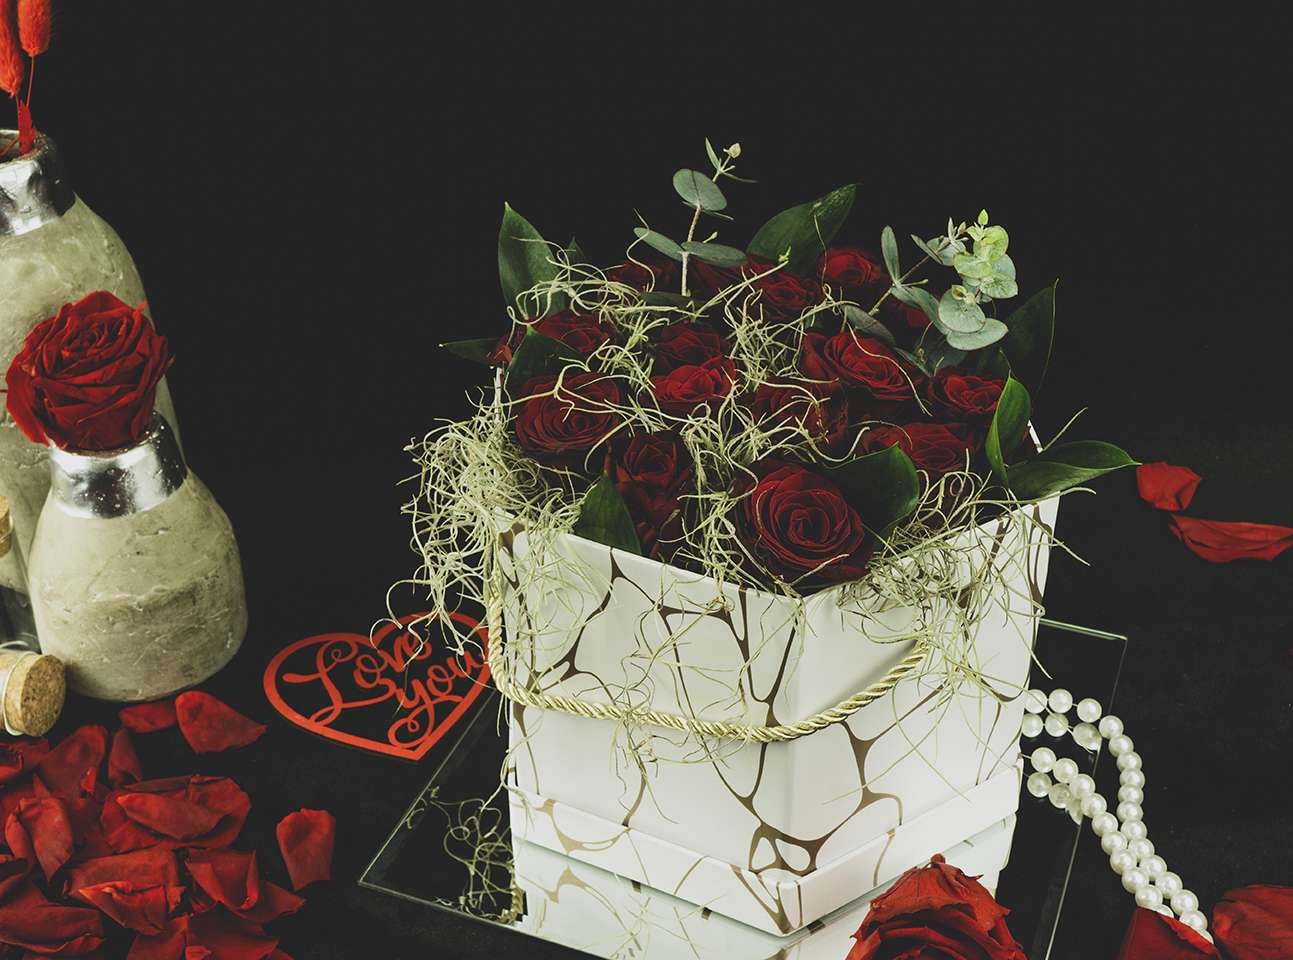 13 red roses.